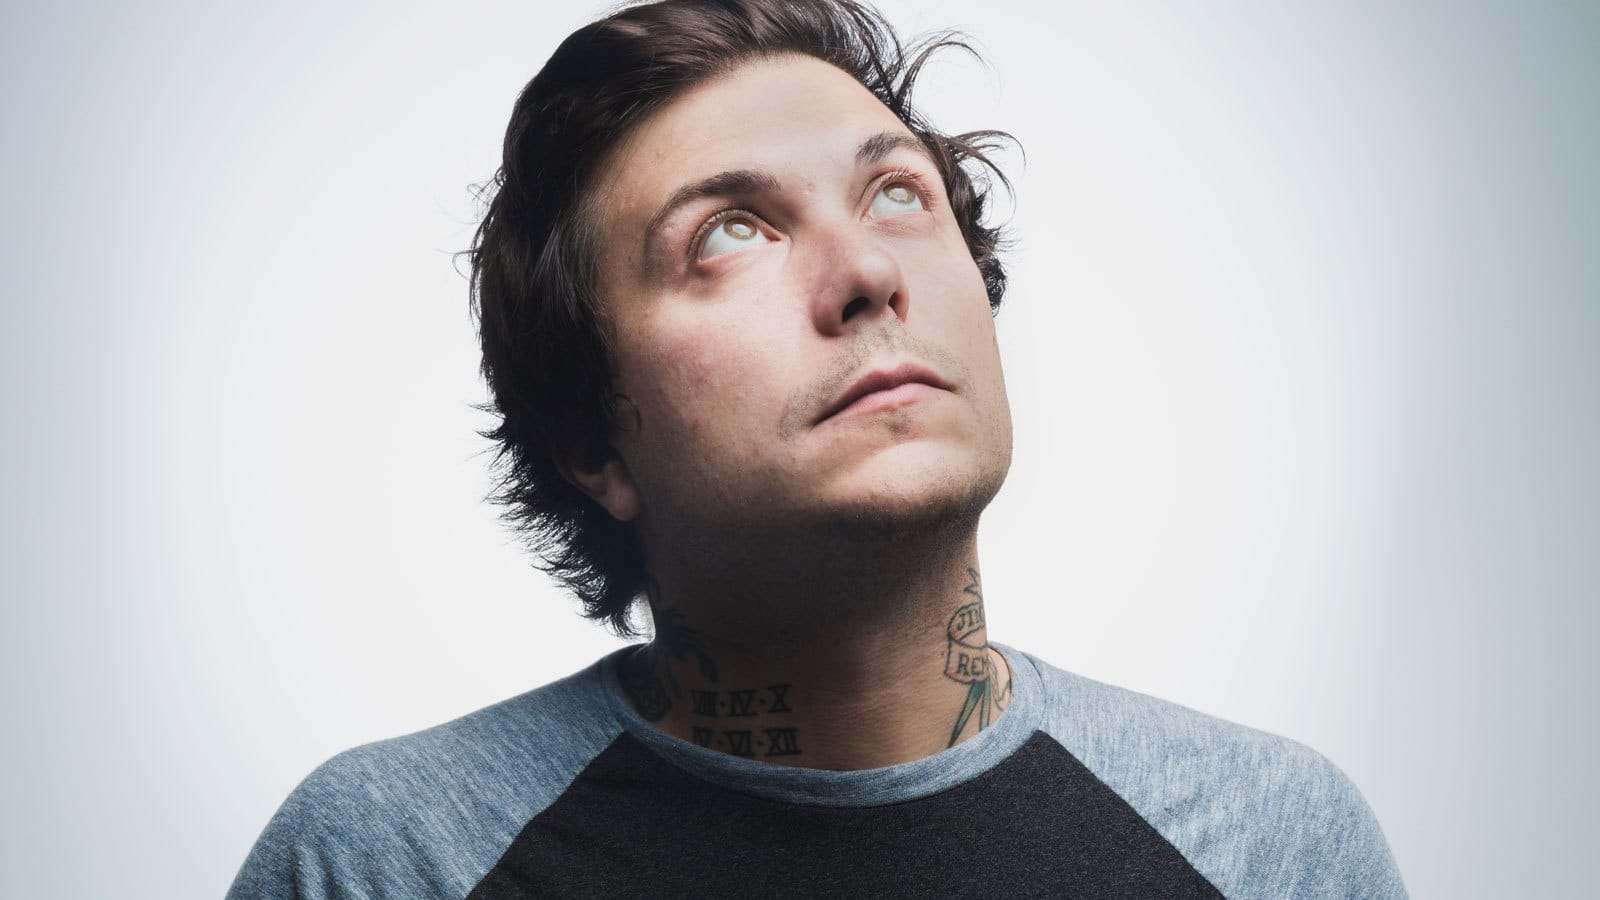 Frank Iero Teases Upcoming Project With 'Surprise' New Band